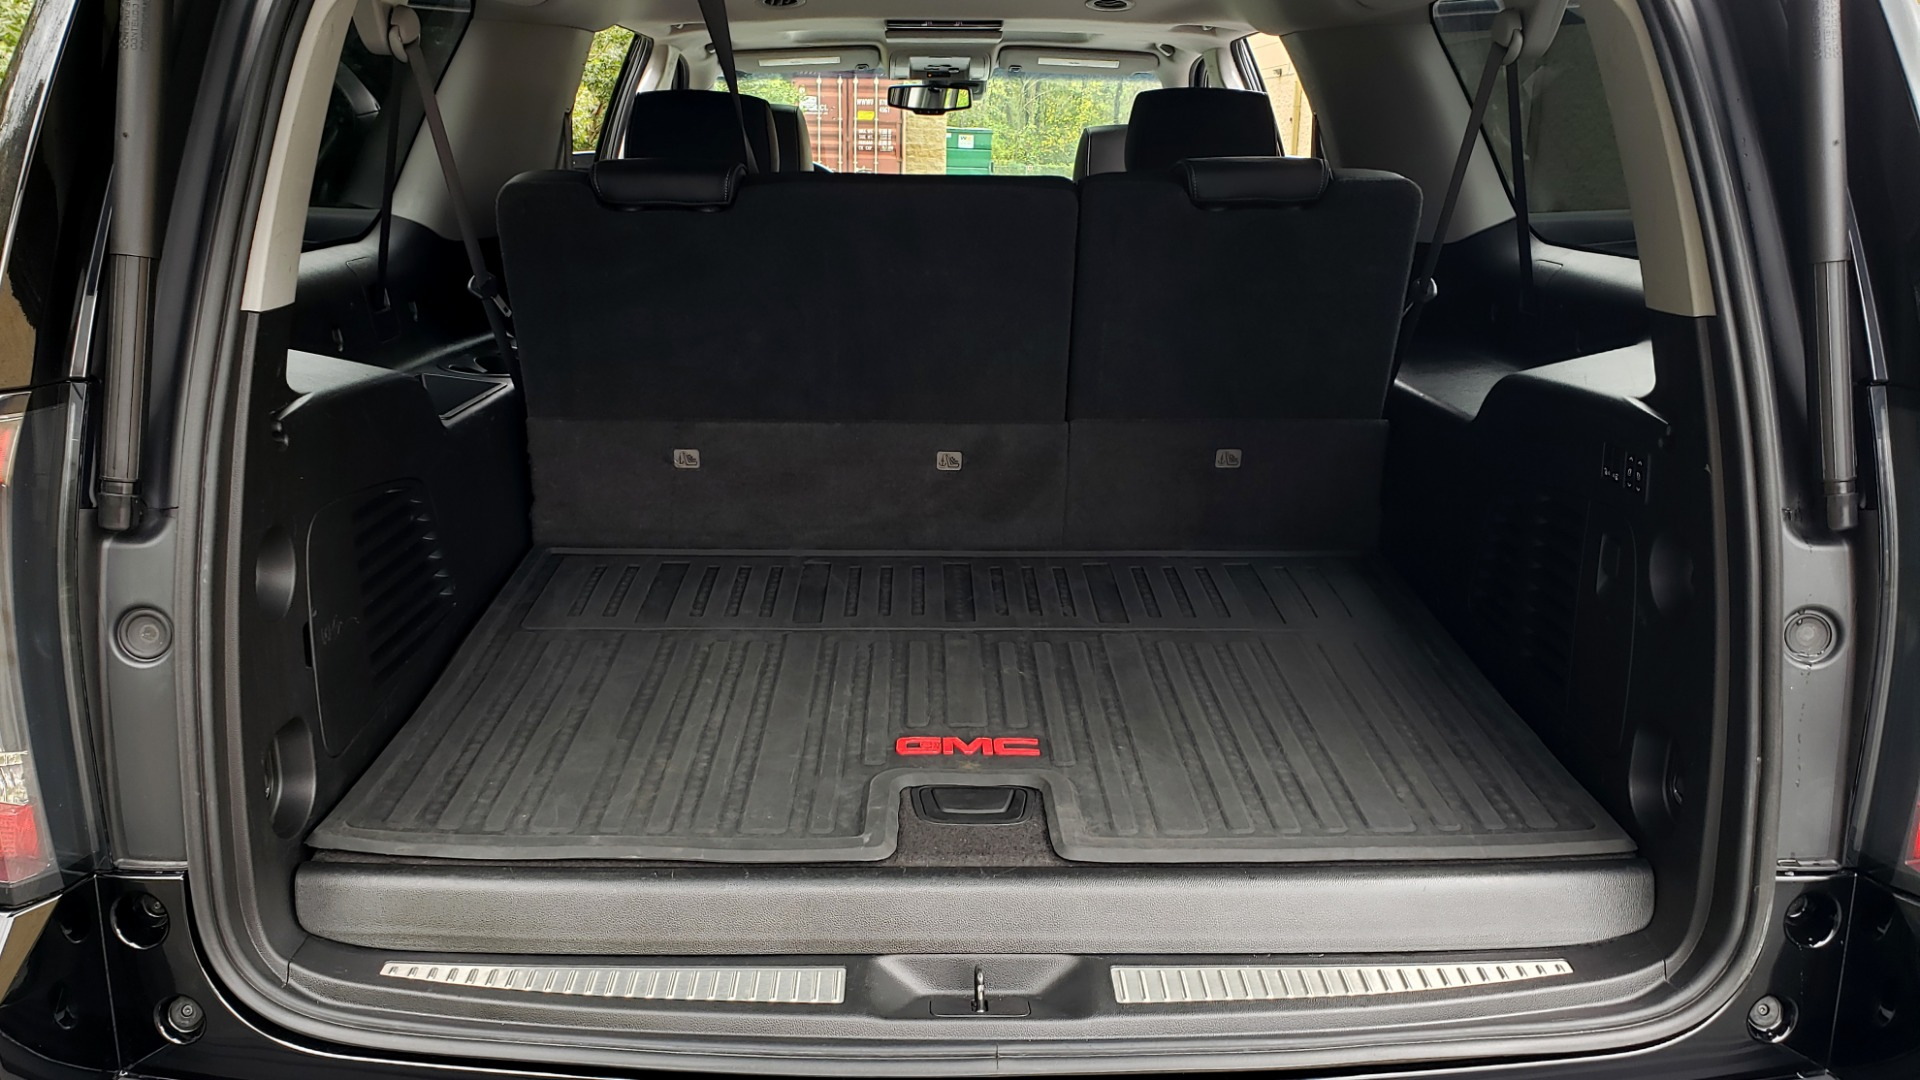 Used 2017 GMC YUKON XL DENALI 4WD / NAV / SUNROOF / ENT / 3-ROWS / BOSE / REARVIEW for sale Sold at Formula Imports in Charlotte NC 28227 15